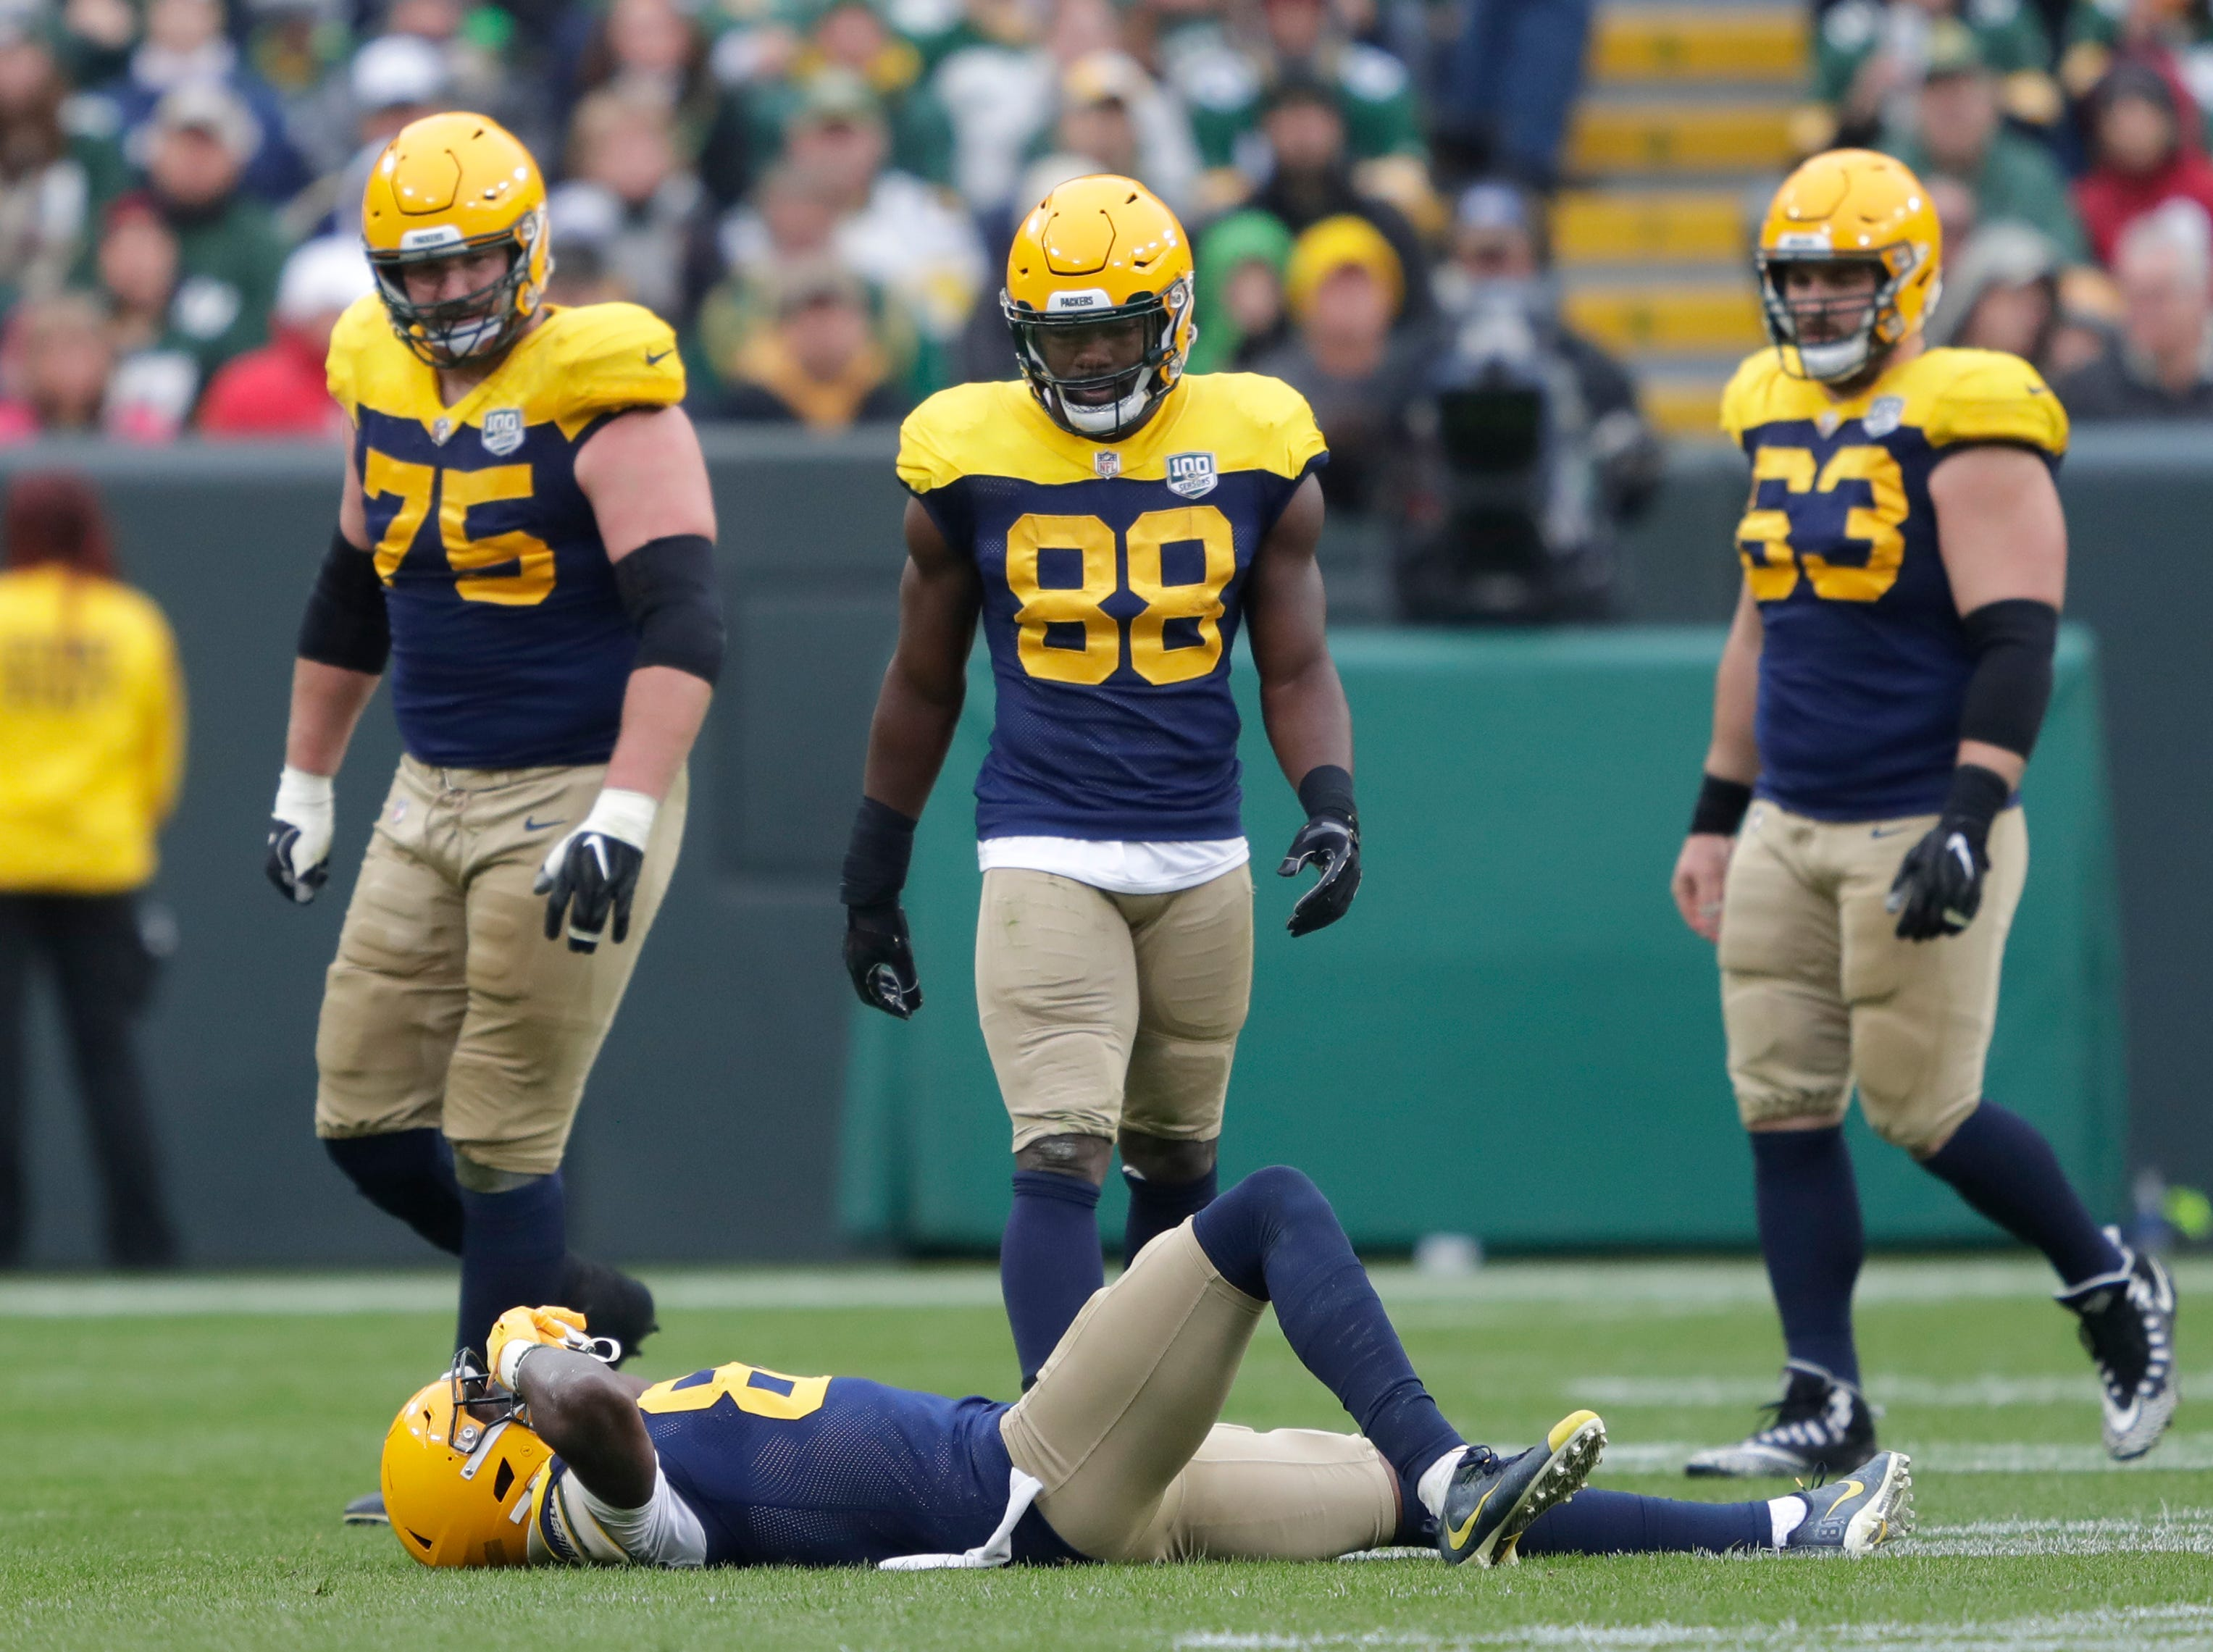 Green Bay Packers wide receiver Geronimo Allison (81) lies on the ground after getting injured from a hit in the third quarter during their football game Sunday, Sept. 30, 2018, at Lambeau Field in Green Bay, Wis. 